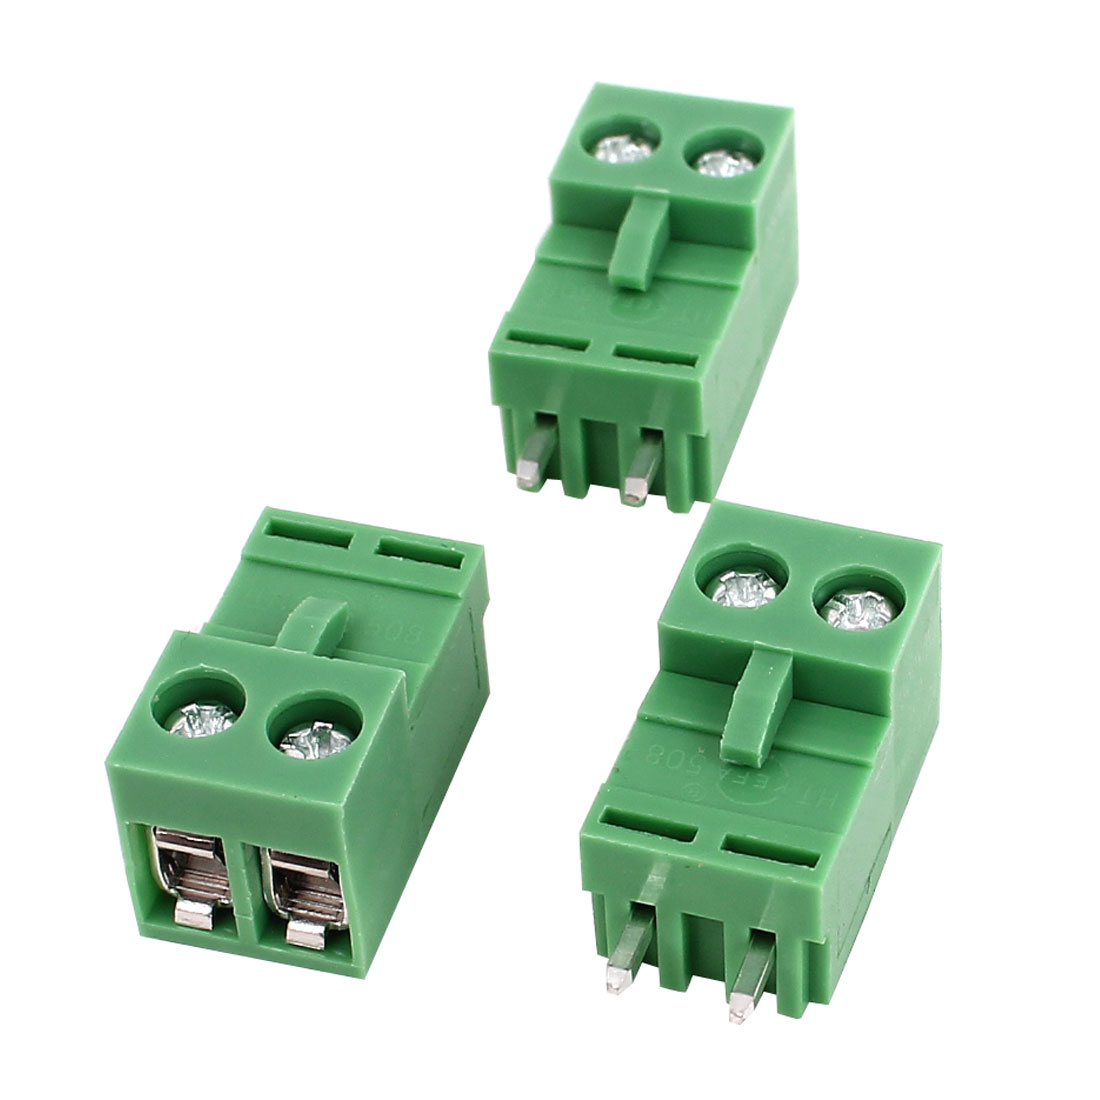 300V 10A 2 Pin 5.08mm Pitch PCB Mount Screw Terminal Block Straight Connector 3pcs Green